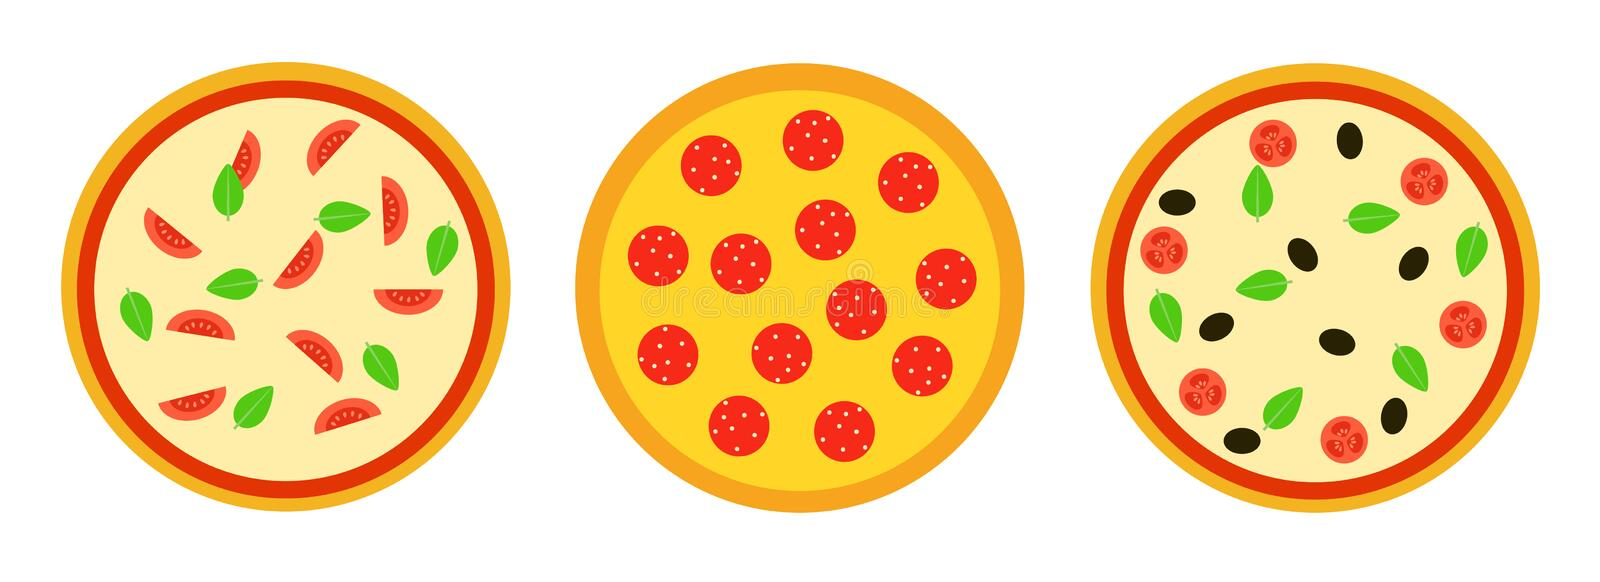 Set of three pizzas. Vector illustration in flat style. royalty free stock images